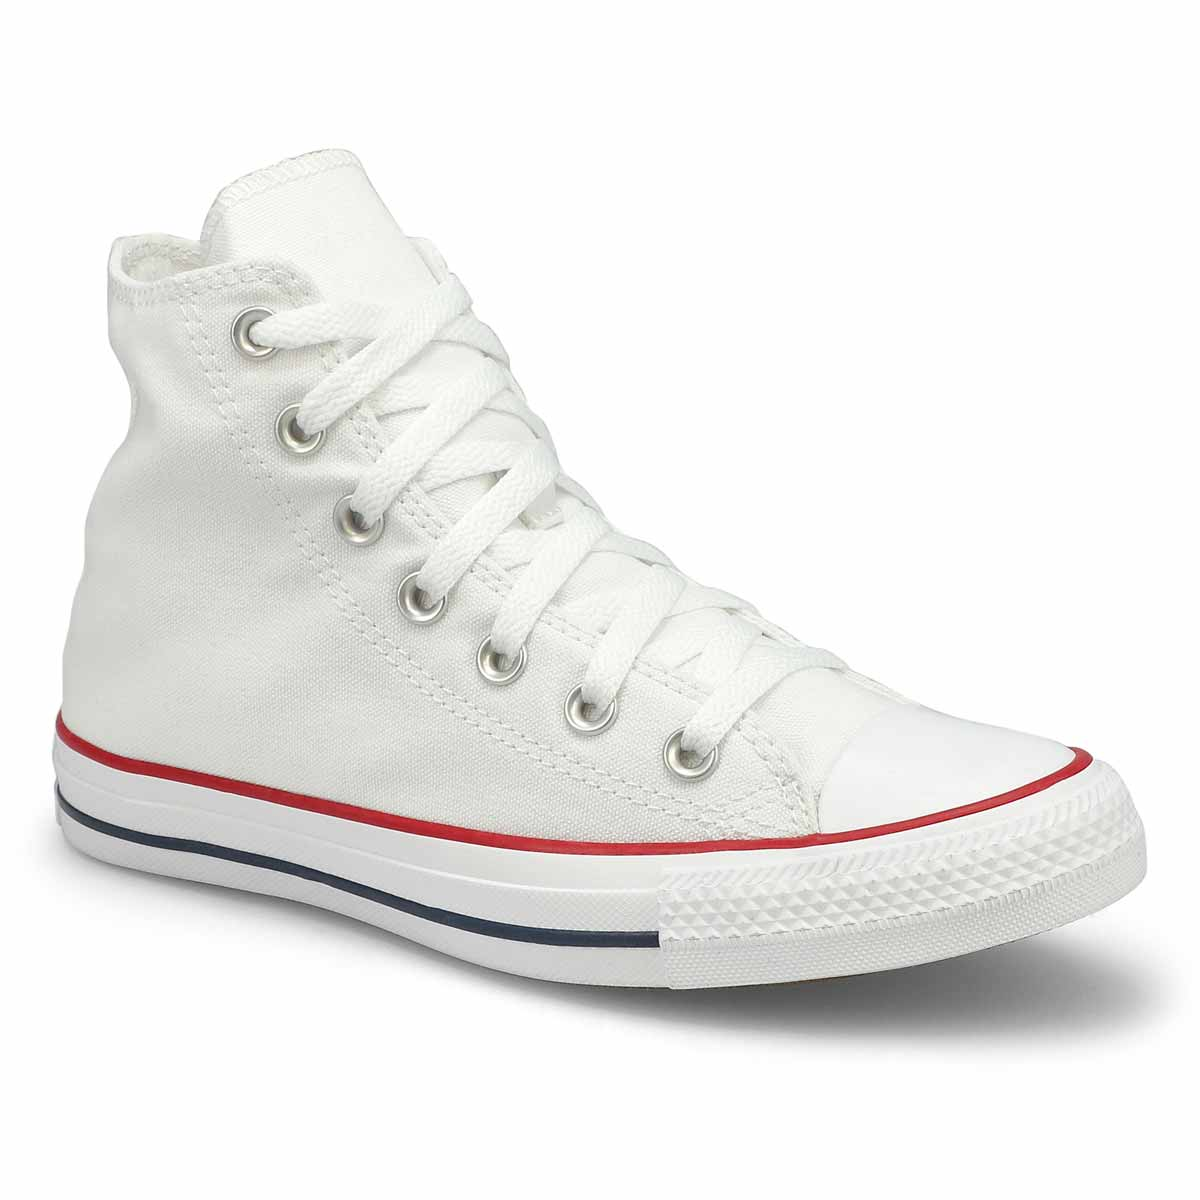 Lds CT All Star Core Hi wht canvas sneak